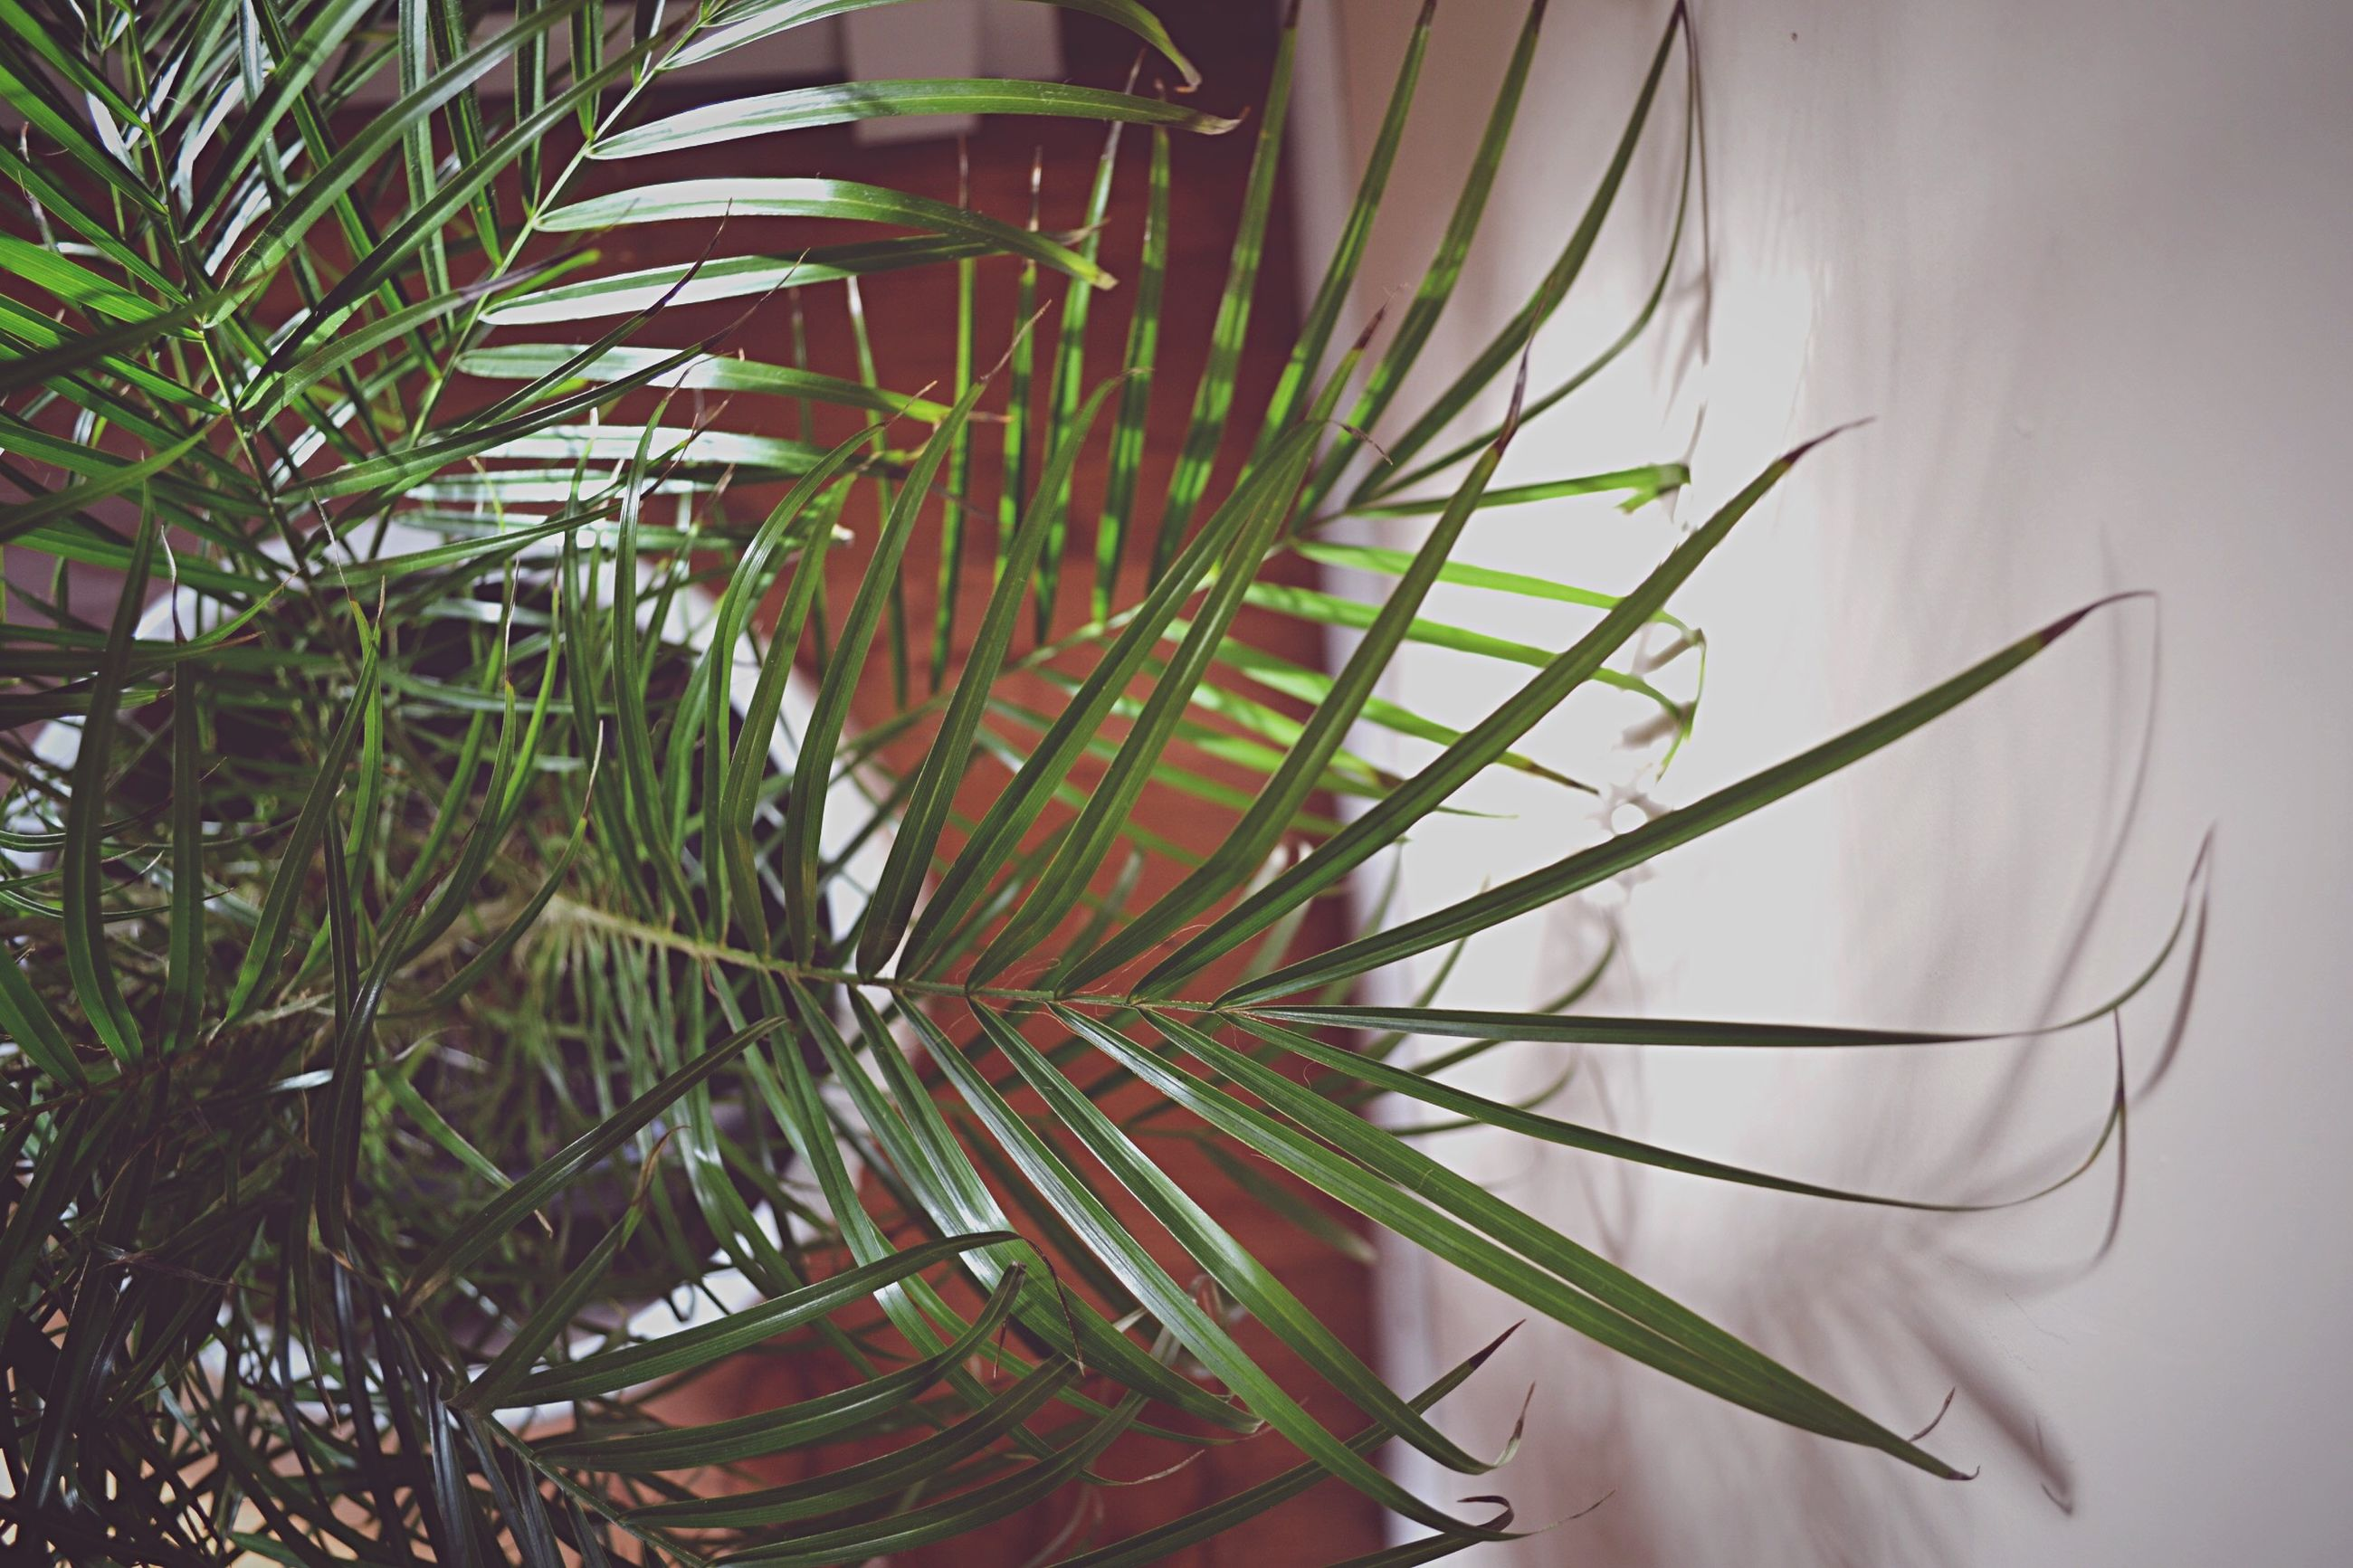 leaf, growth, plant, close-up, palm tree, nature, cactus, potted plant, stem, green color, thorn, beauty in nature, spiked, no people, palm leaf, day, outdoors, low angle view, fragility, growing